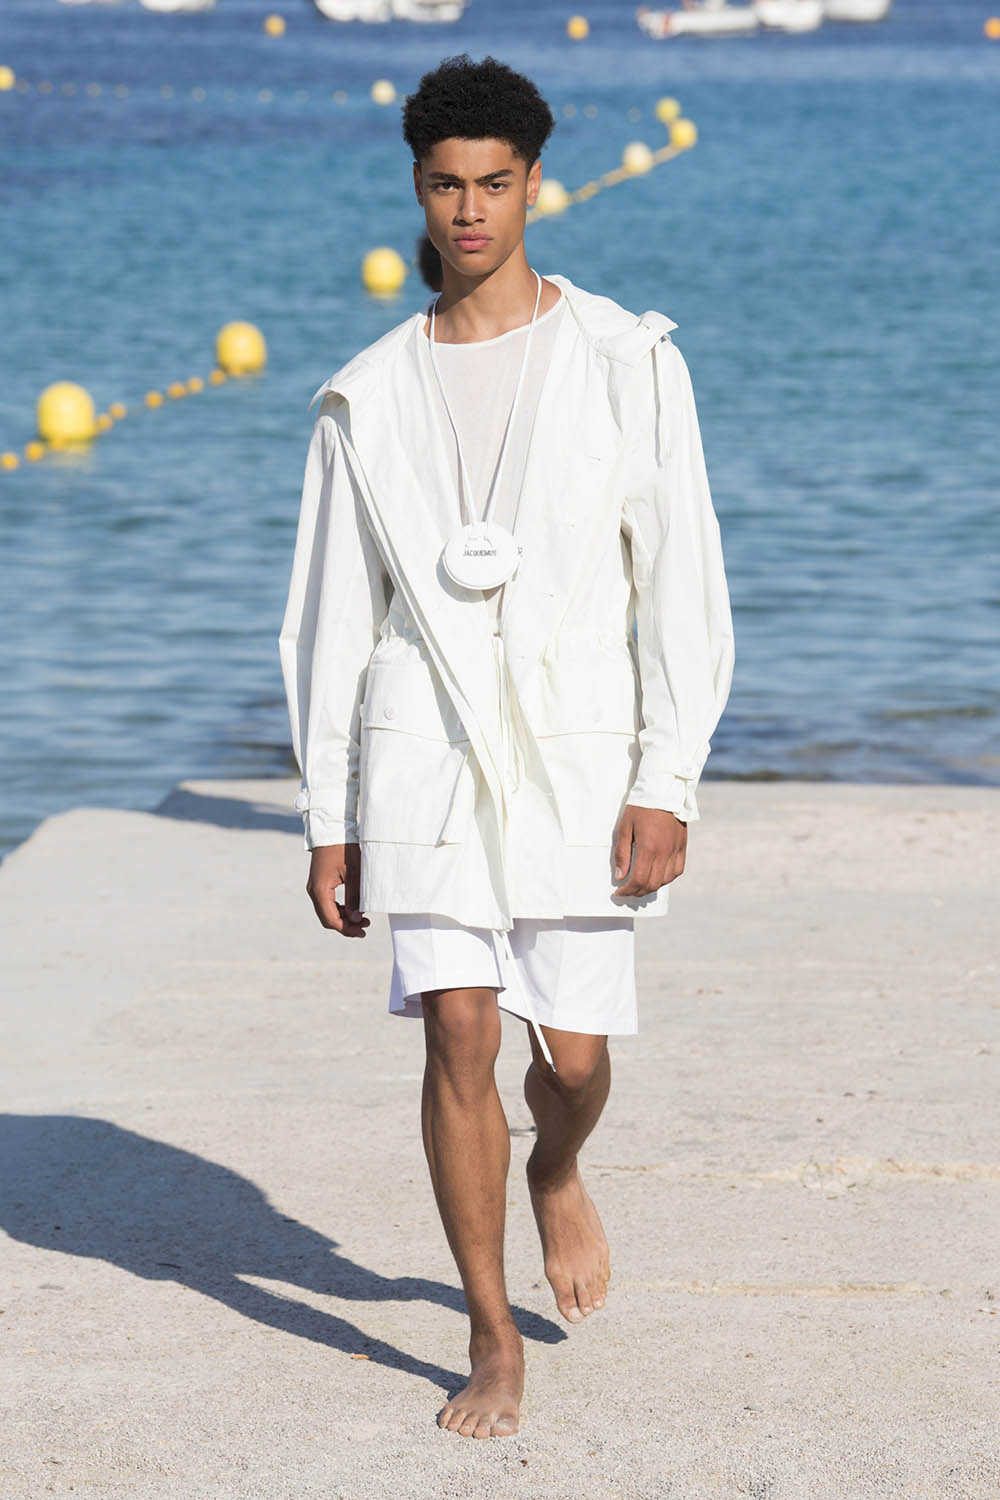 Jacquemus Paris Fashion Week Men's SS19 - Sagaboi - Look 8